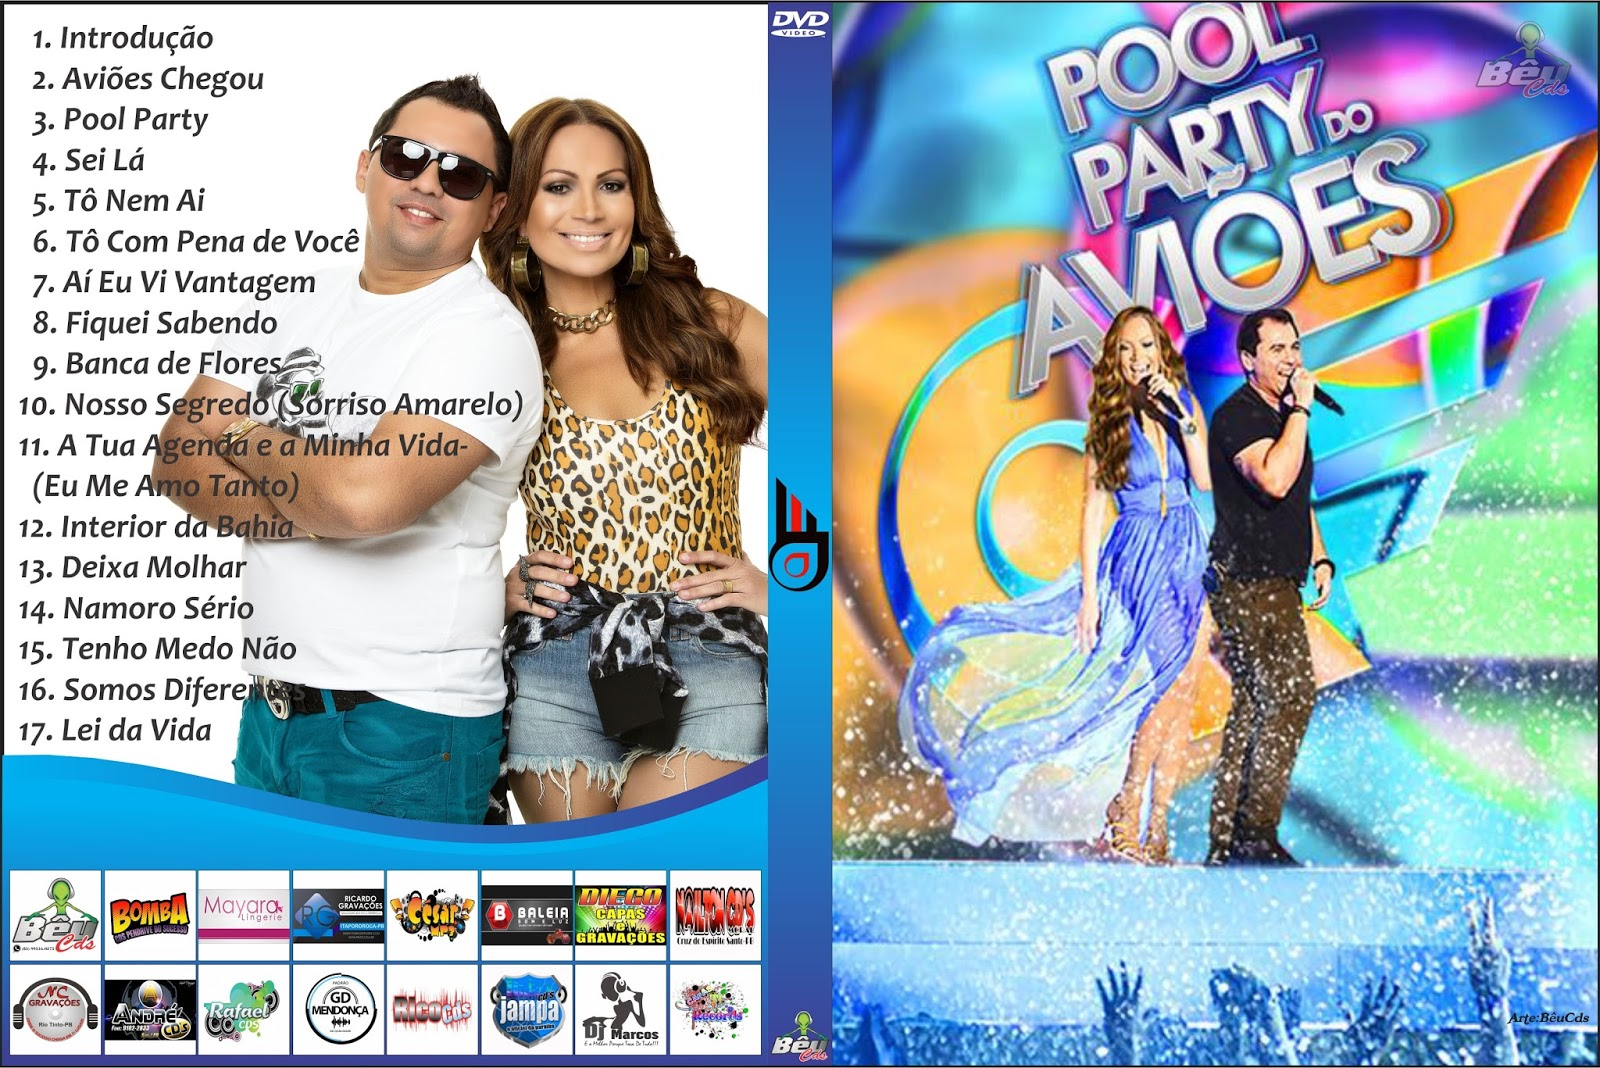 Download Aviões do Forró Pool Party do Aviões Ao Vivo DVD-R Avi 25C3 25B5es 2BDo 2BForr 25C3 25B3 2B 2BPool 2BParty